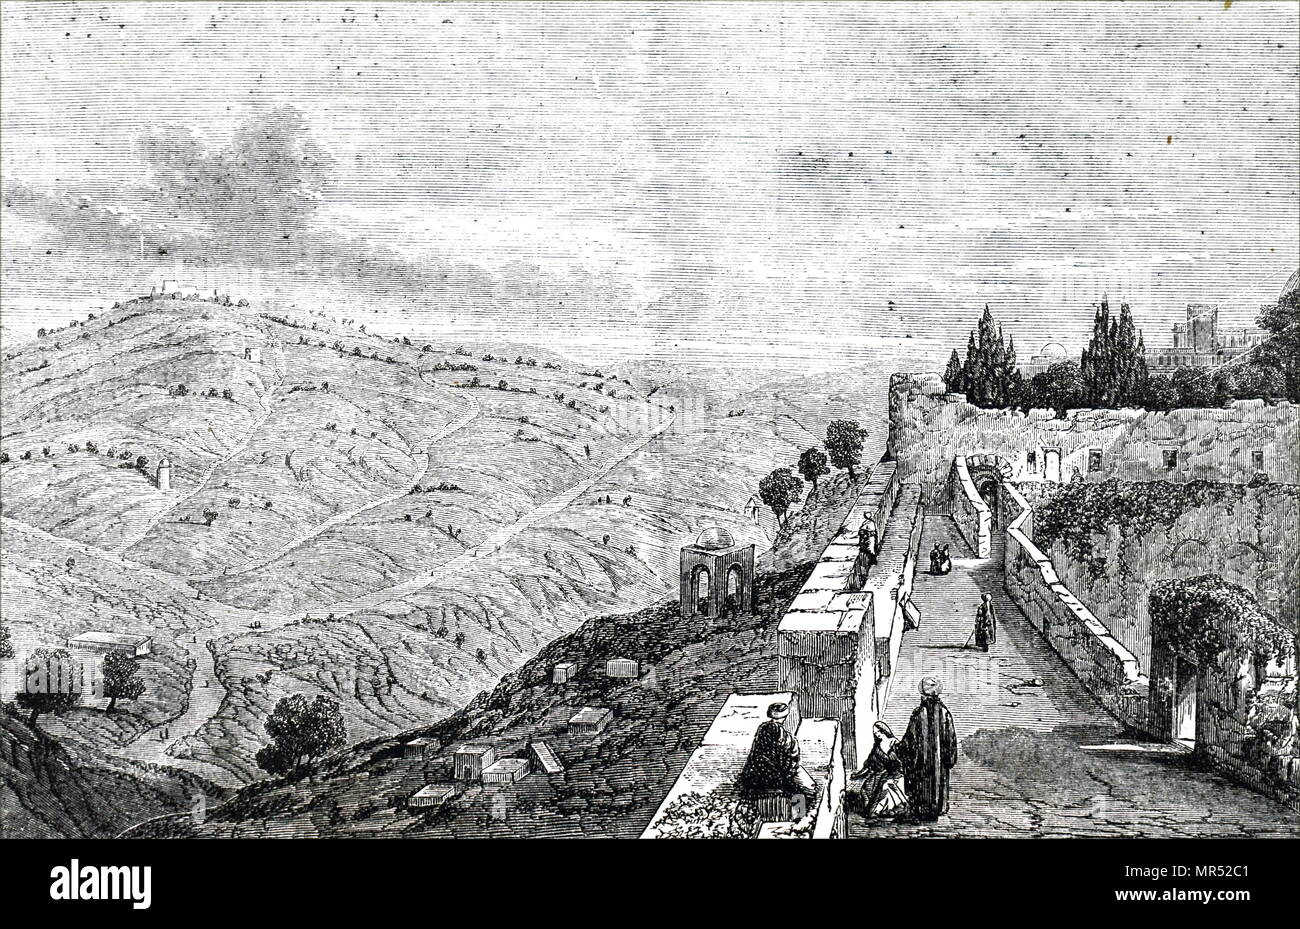 Illustration depicting a view of Mount of Olives (or Mount Olivet) mountain ridges east of and adjacent to Jerusalem's Old City. It is named for the olive groves that once covered it's slopes. Dated 19th century Stock Photo